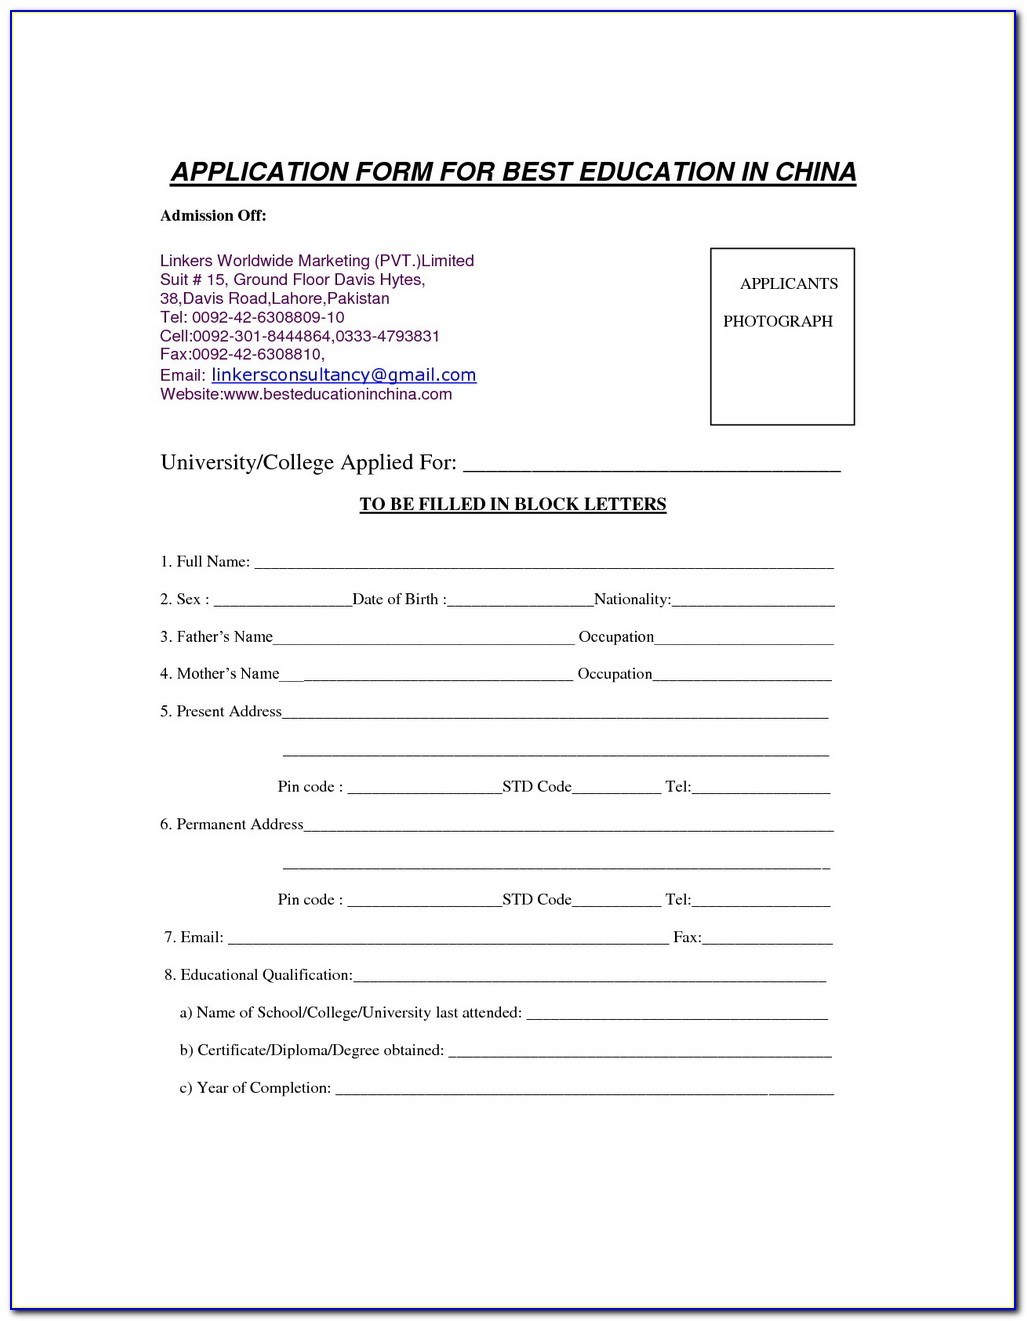 blank resume format in ms word for fresher vincegray2014 pdf free summary paragraph self Resume Blank Resume Format Pdf Free Download